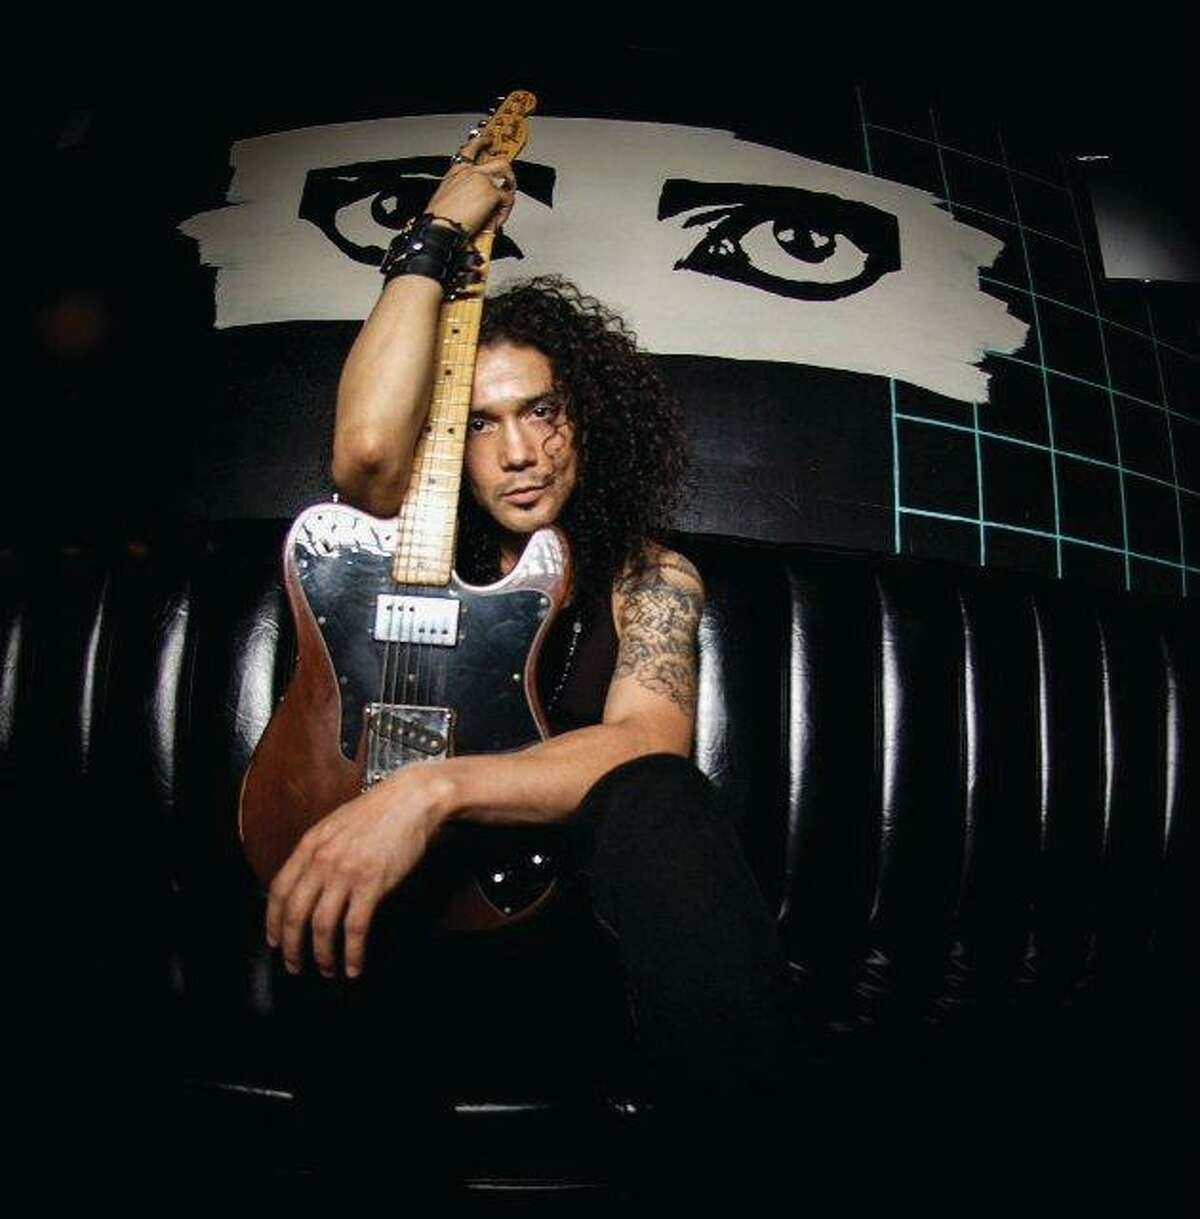 Chris Perez shared a special shot taken during his performance near Selena's hometown on Saturday.